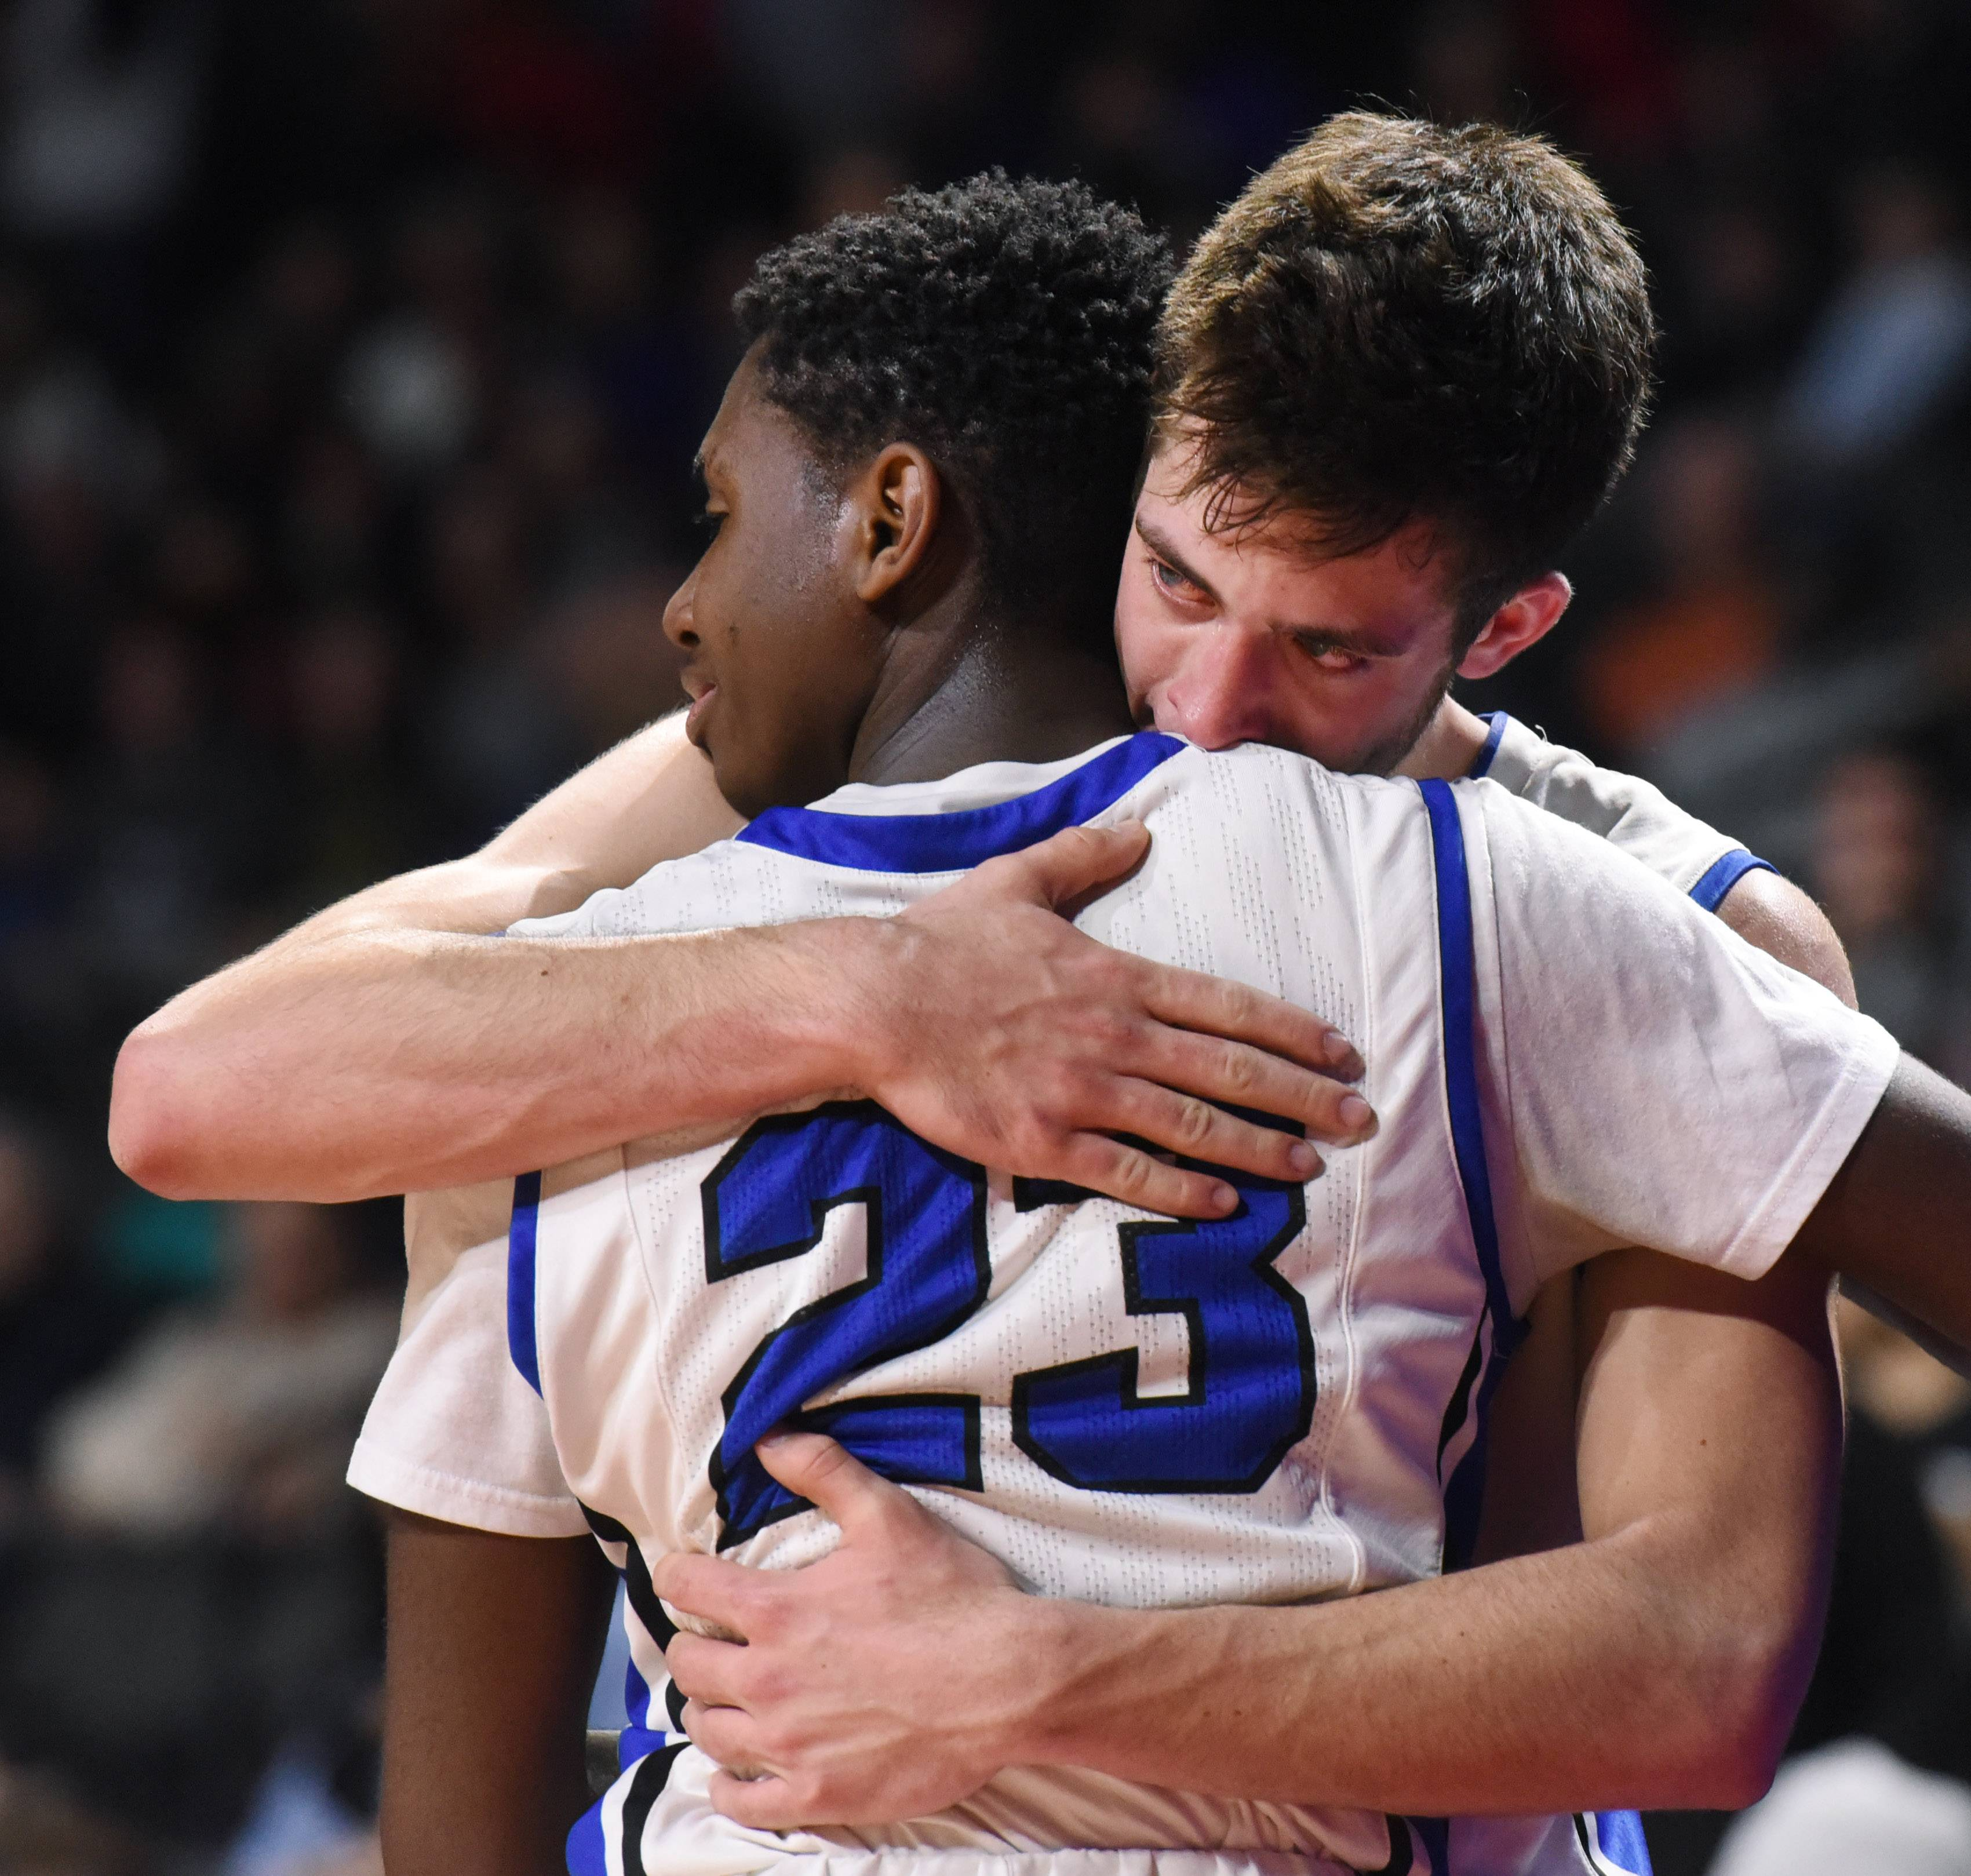 Lake Zurich's Kenny Haynes, front, embraces teammate Ryan Kutsor after both players came out of the game for substitutes in the closing minutes of the Bears' loss to Evanston in the Class 4A supersectional at the Sears Centre in Hoffman Estates on Tuesday.